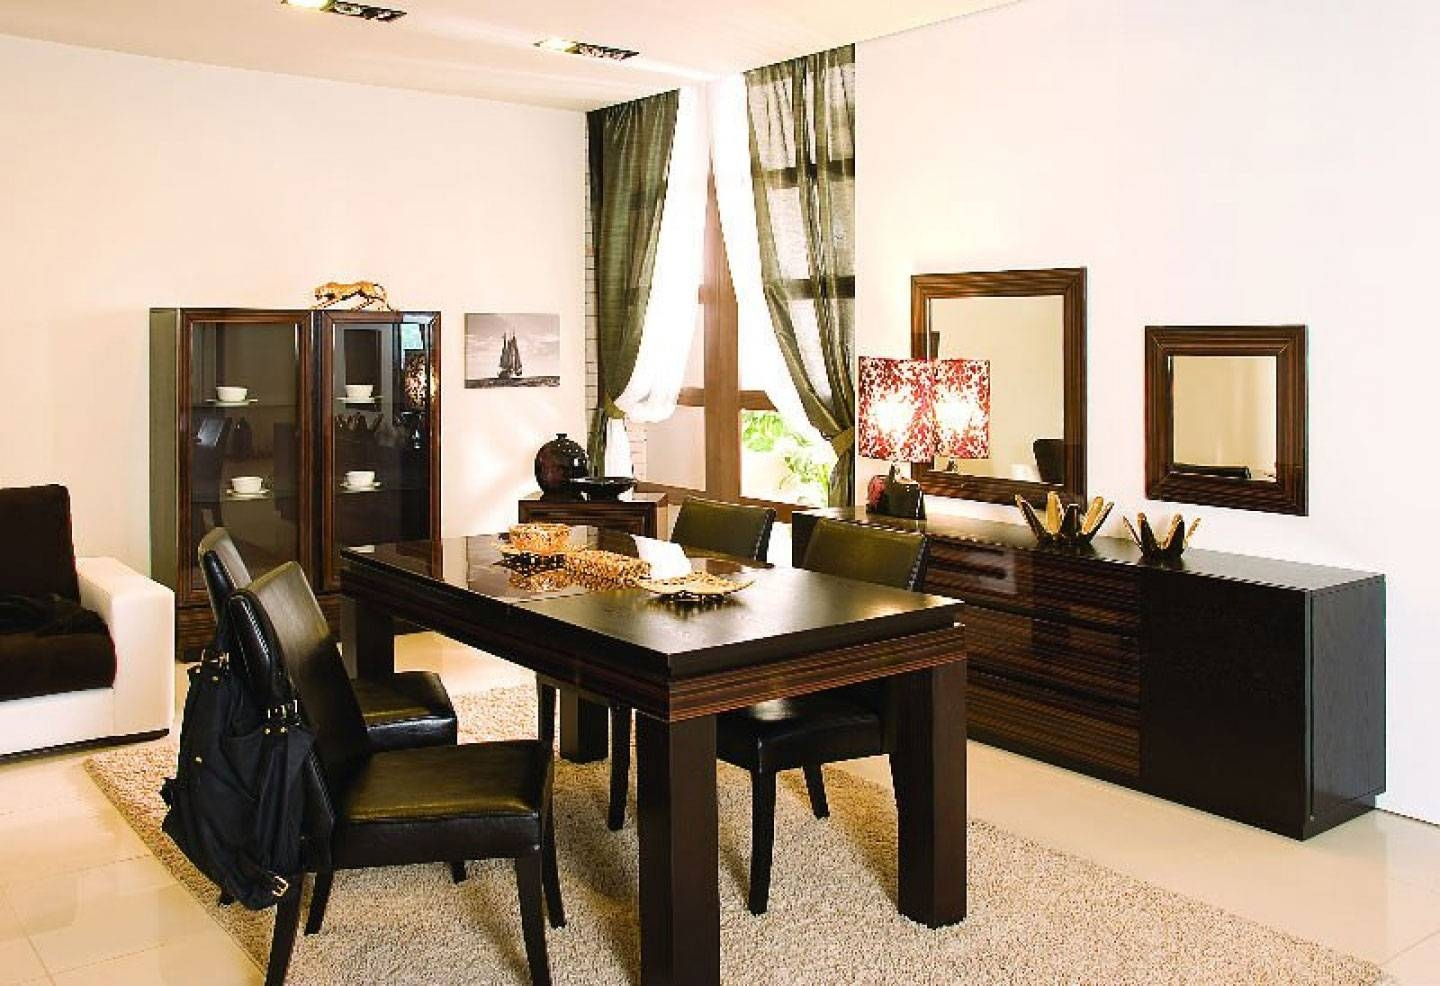 Classic Dining Room Table Set Bring Back Past Impression – Amaza Within Latest Dining Room Sets With Sideboards (#4 of 15)